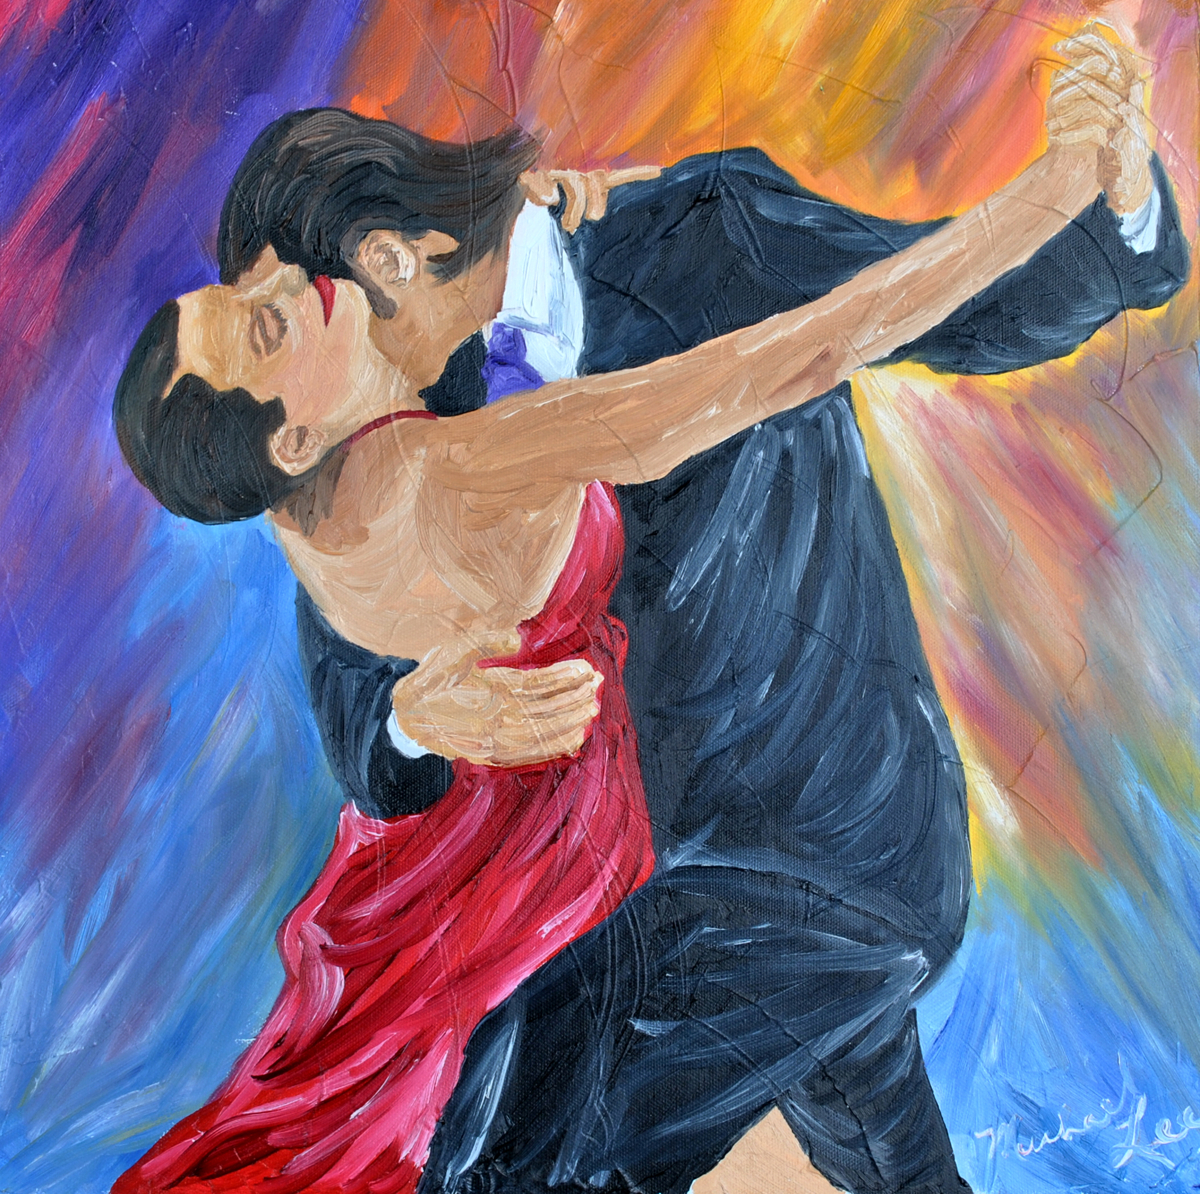 Painting Two To Tango Original Art By Michael Lee